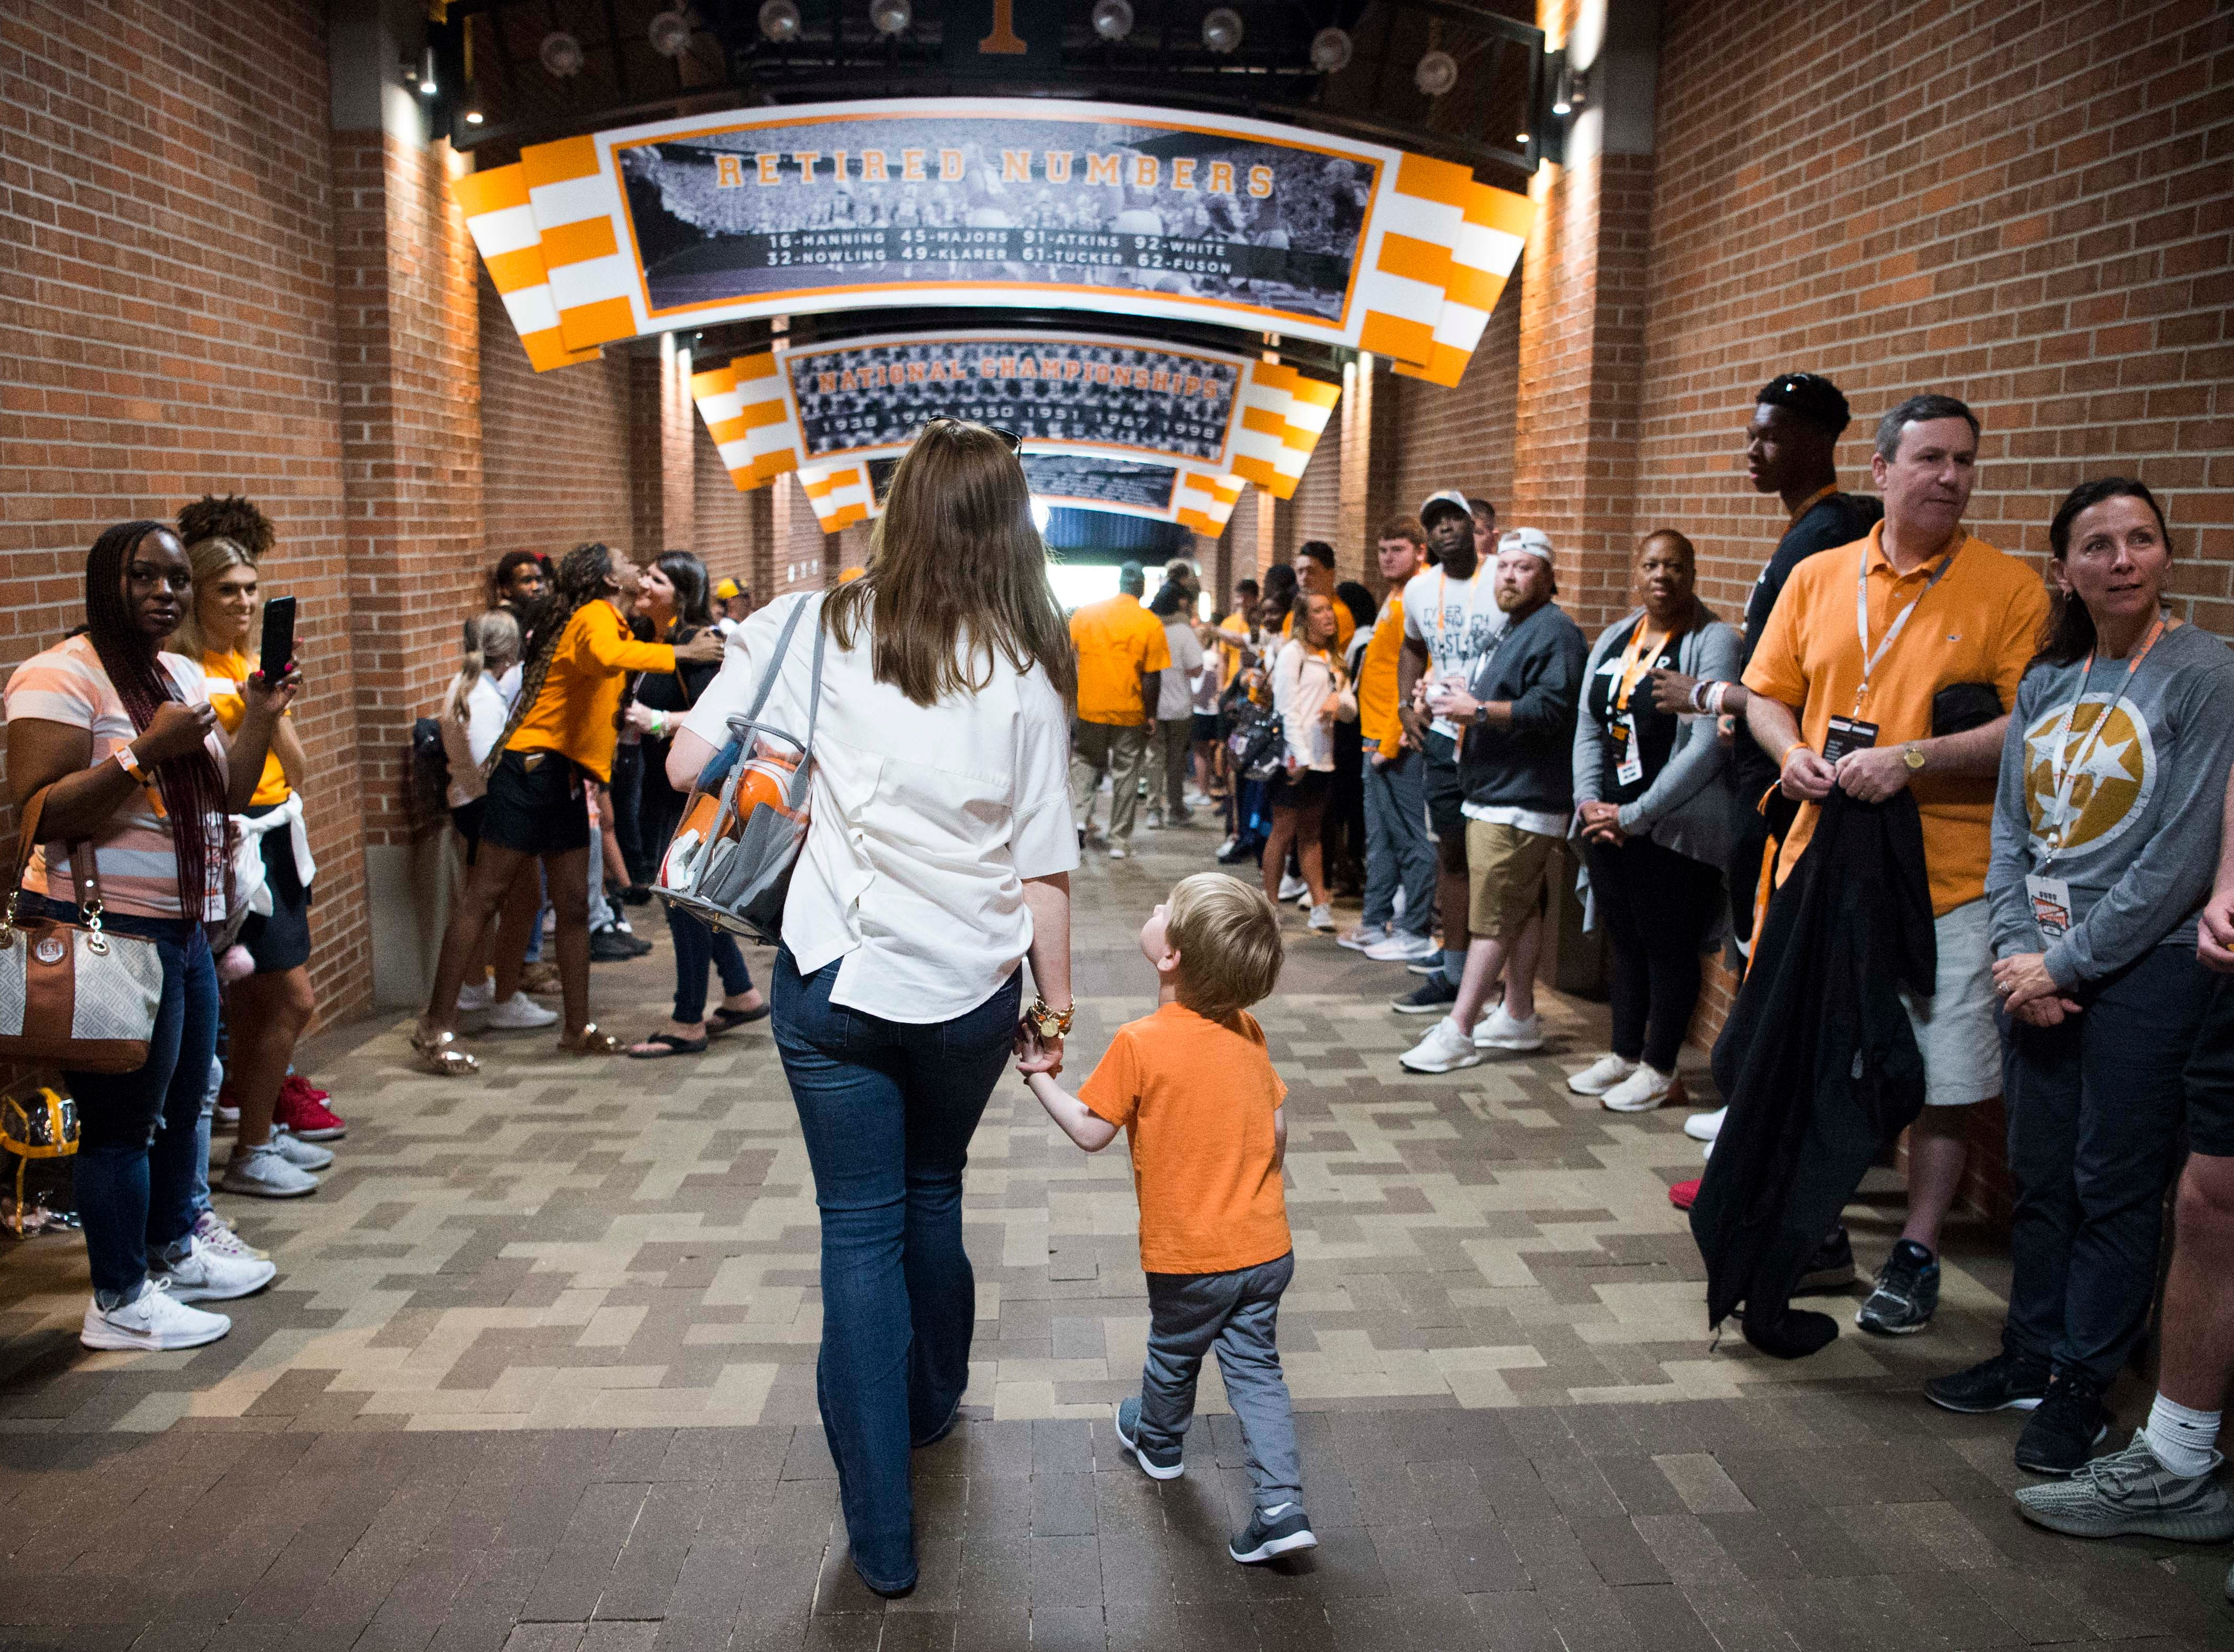 Casey Pruitt walks into Neyland with son Ridge before the Vols spring game in Knoxville Saturday, April 13, 2019.